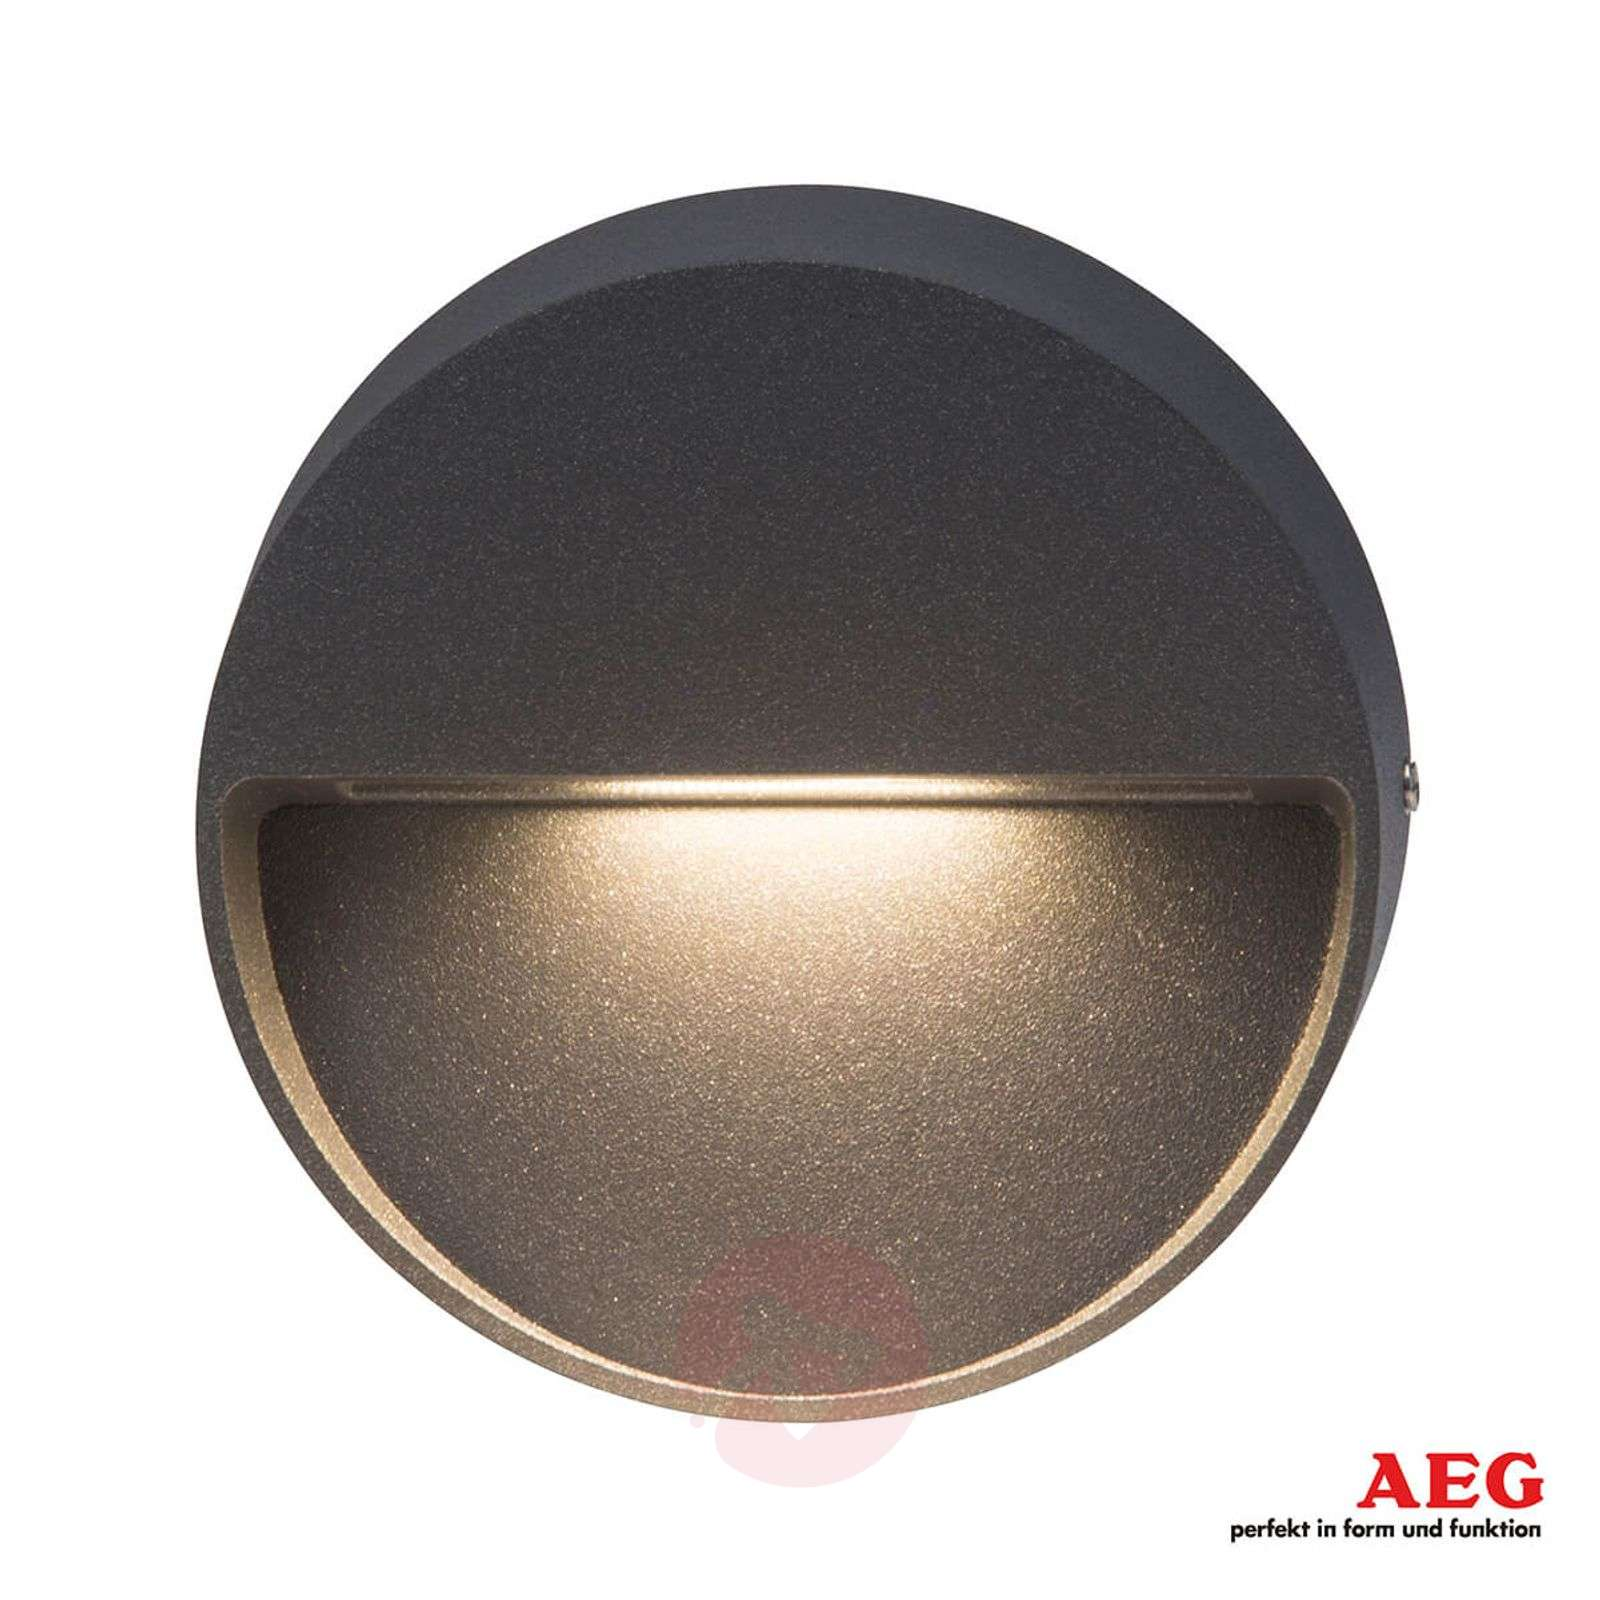 Applique per esterni LED Front tonda antracite-3057127-01